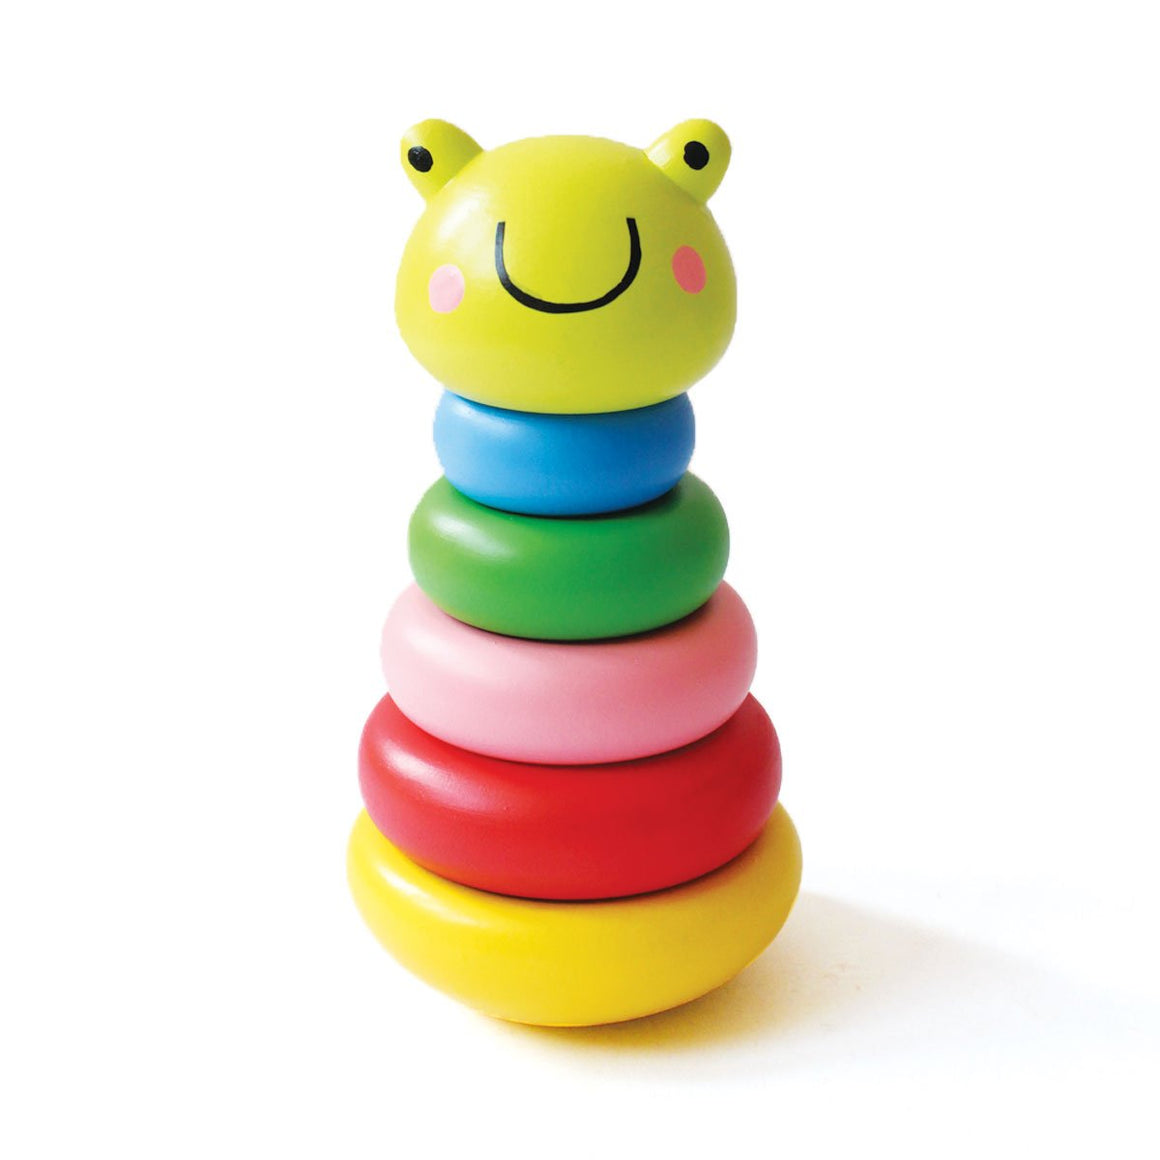 Wobbly Frog Wooden Stacker